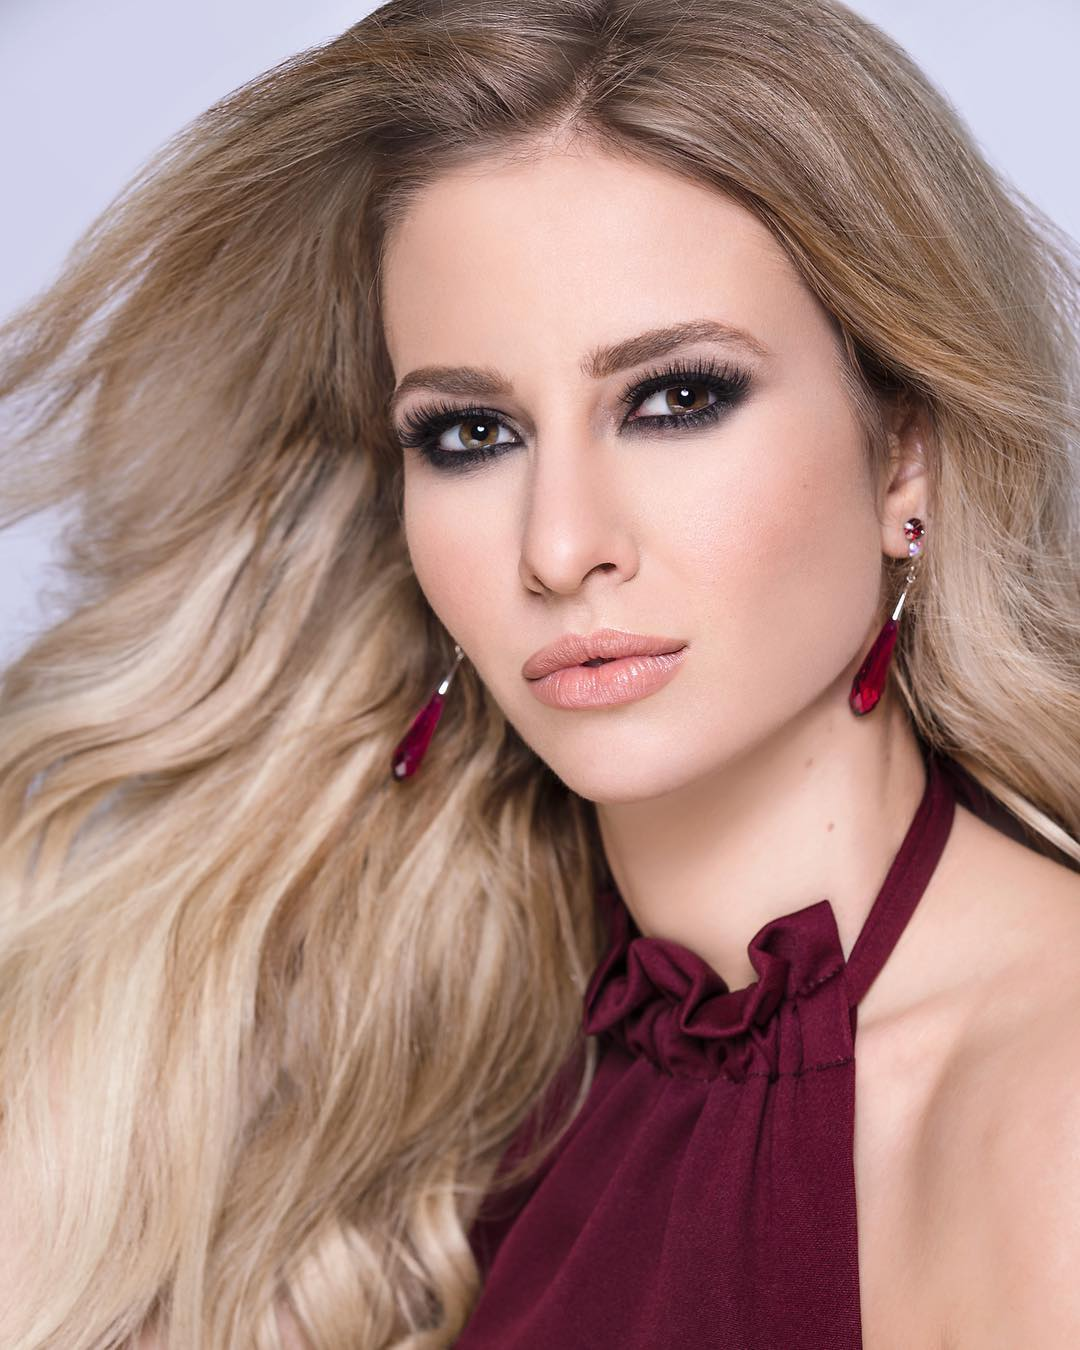 candidatas a miss usa 2019. final: 2 may. - Página 8 R74ksa5z